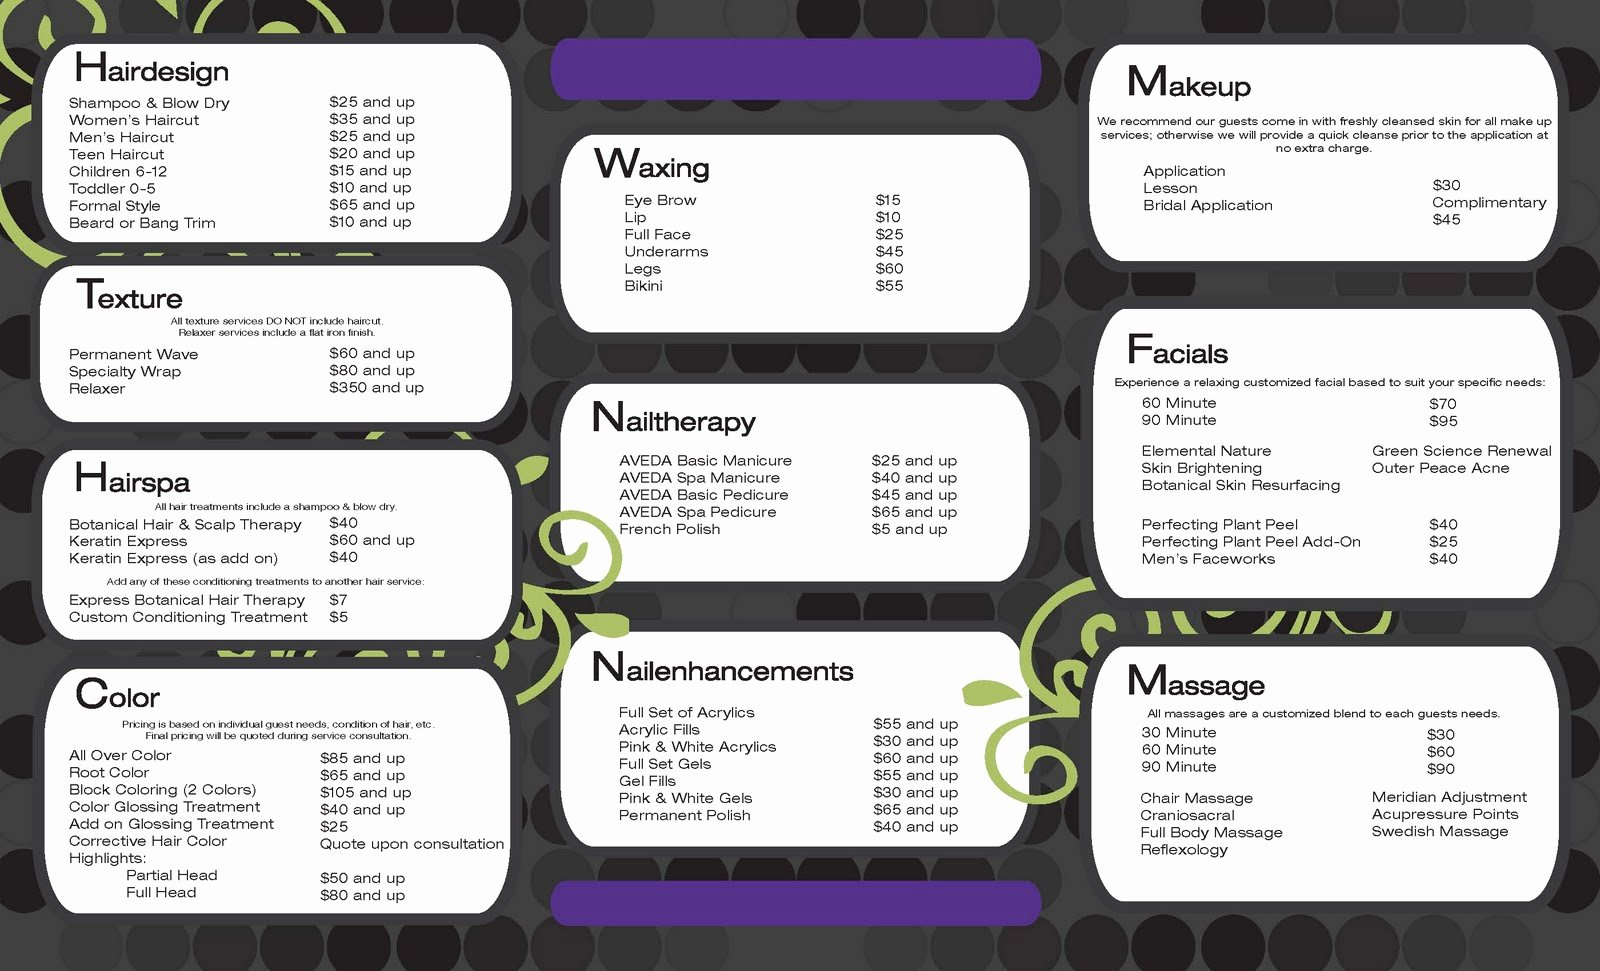 Menu Of Services Template Inspirational Tatum Criner Mcwatters Portfolio Trillium Salon and Spa